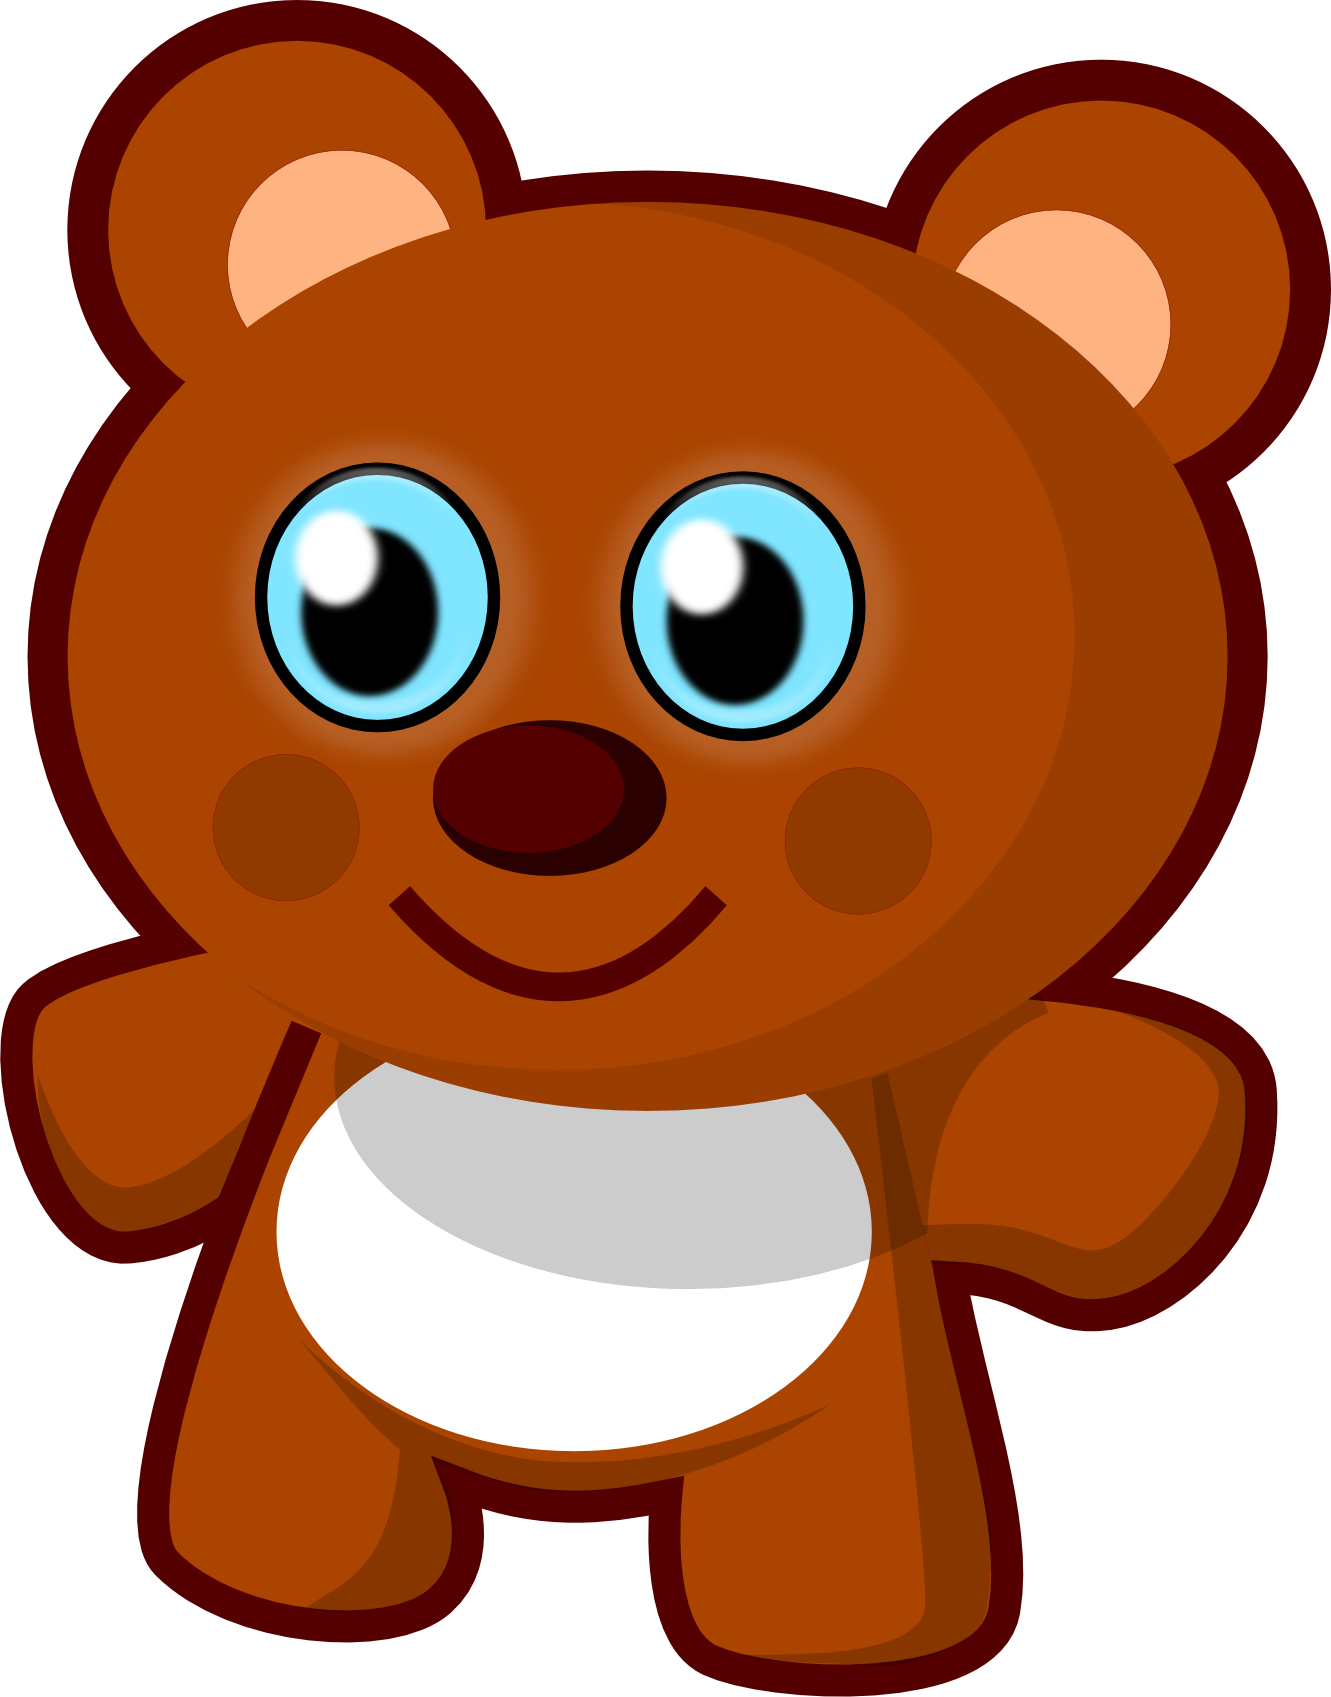 Clipart socks six. Clip art cute bear